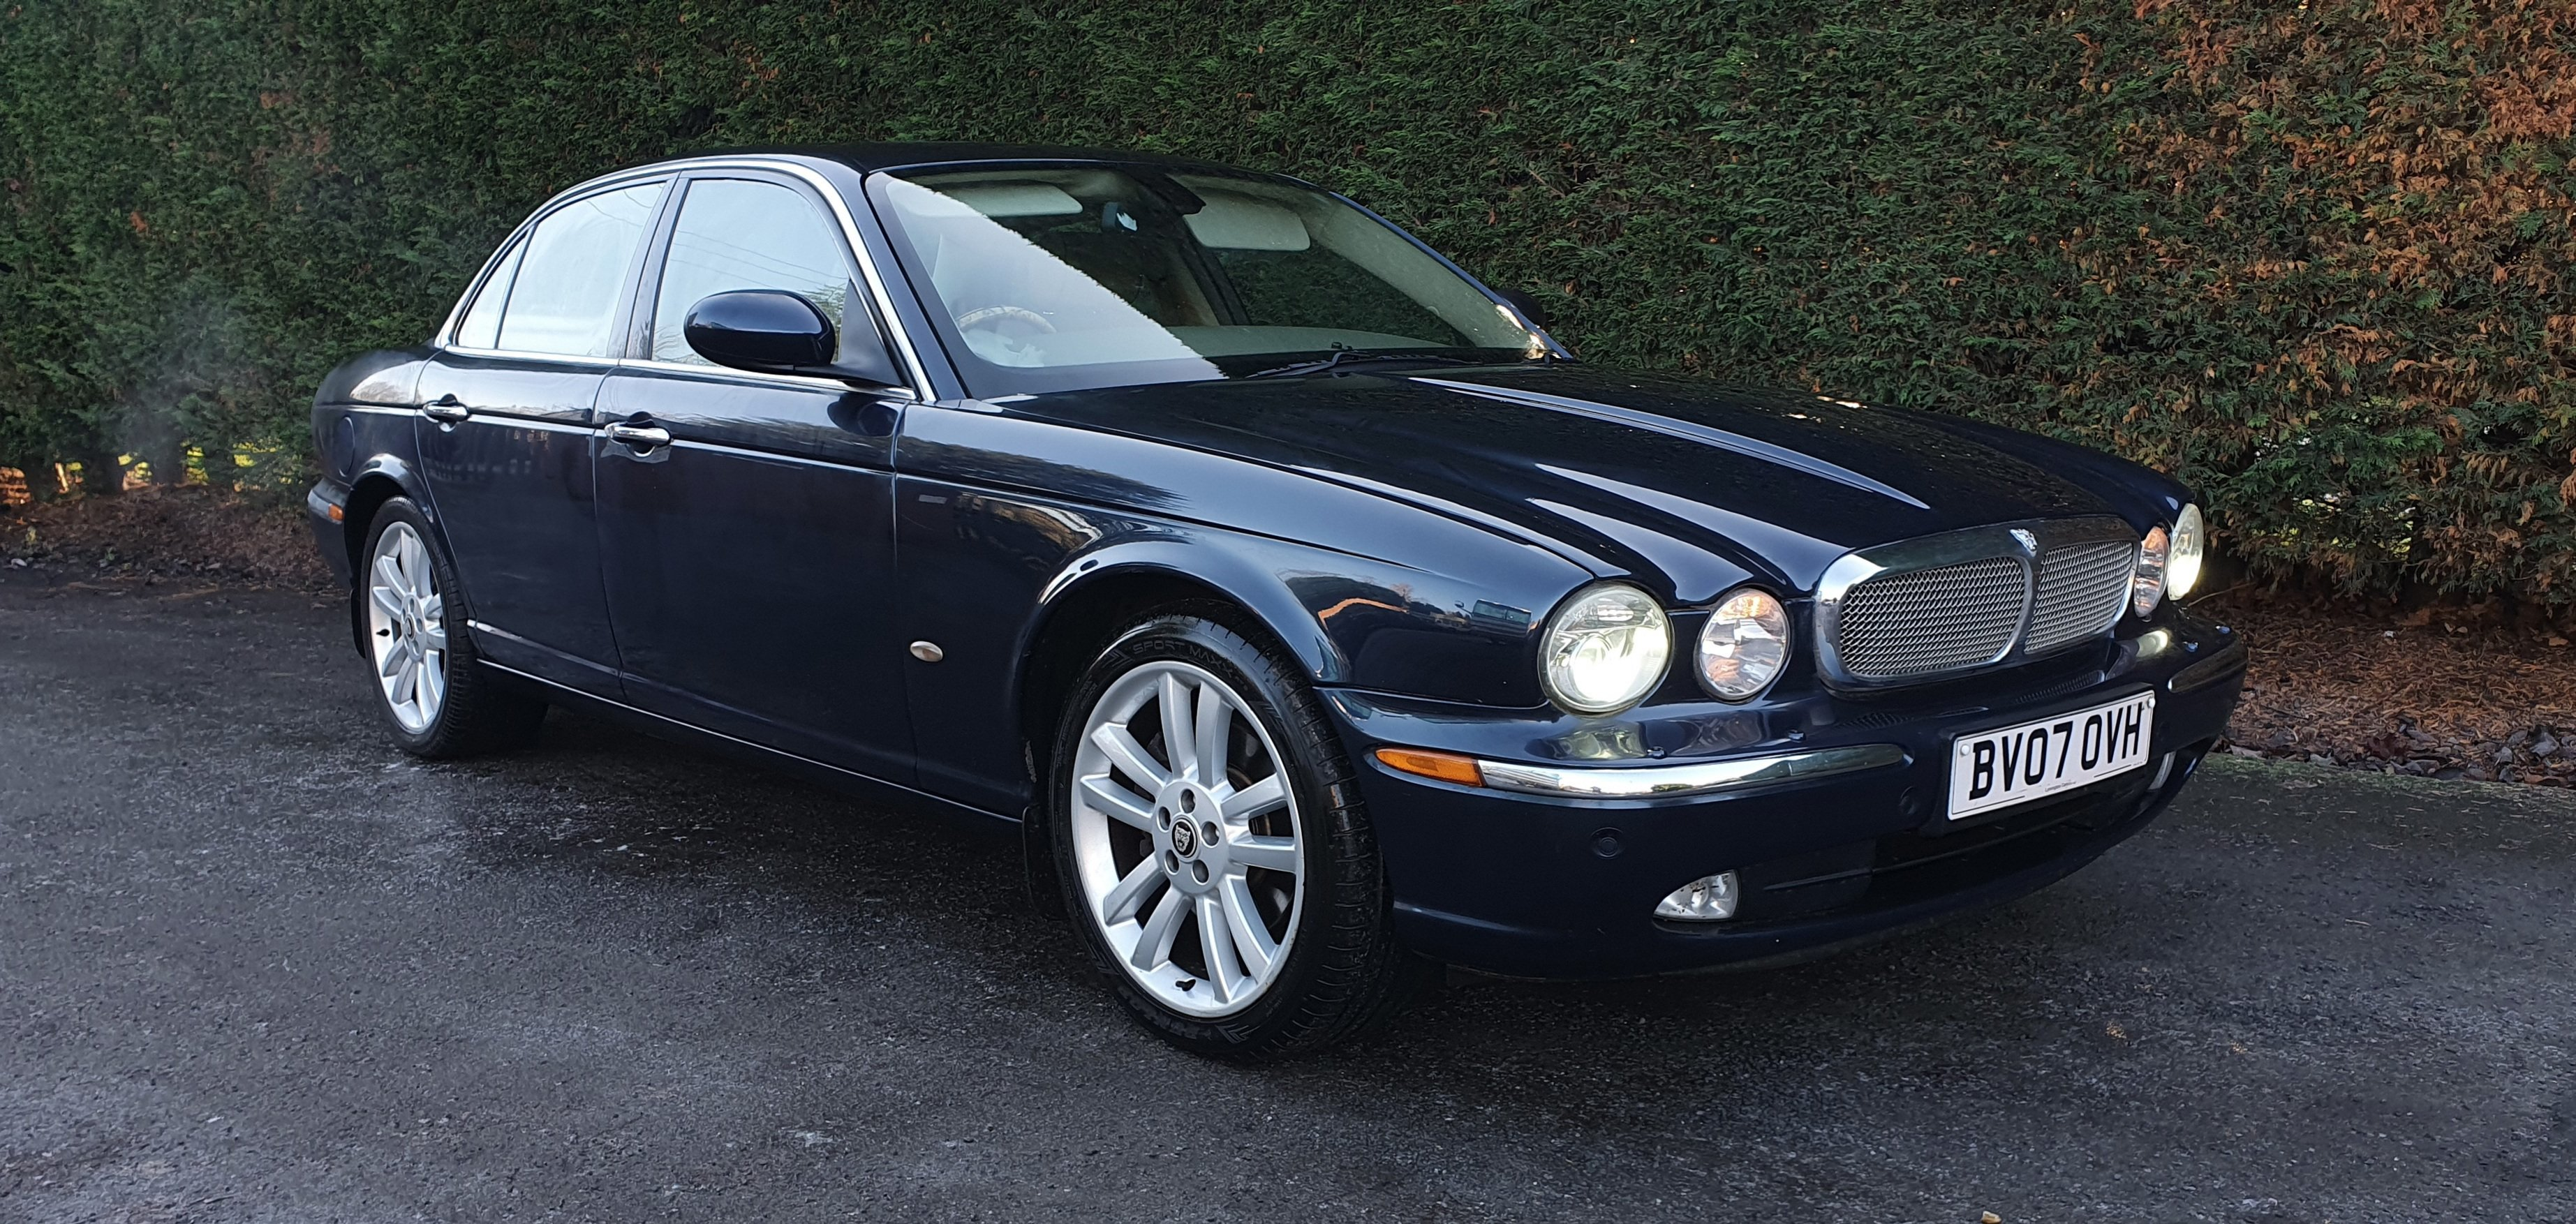 2007 X356 3.0 V6 XJ SOVEREIGN, FULL M/D HISTORY, UK CAR For Sale (picture 1 of 3)